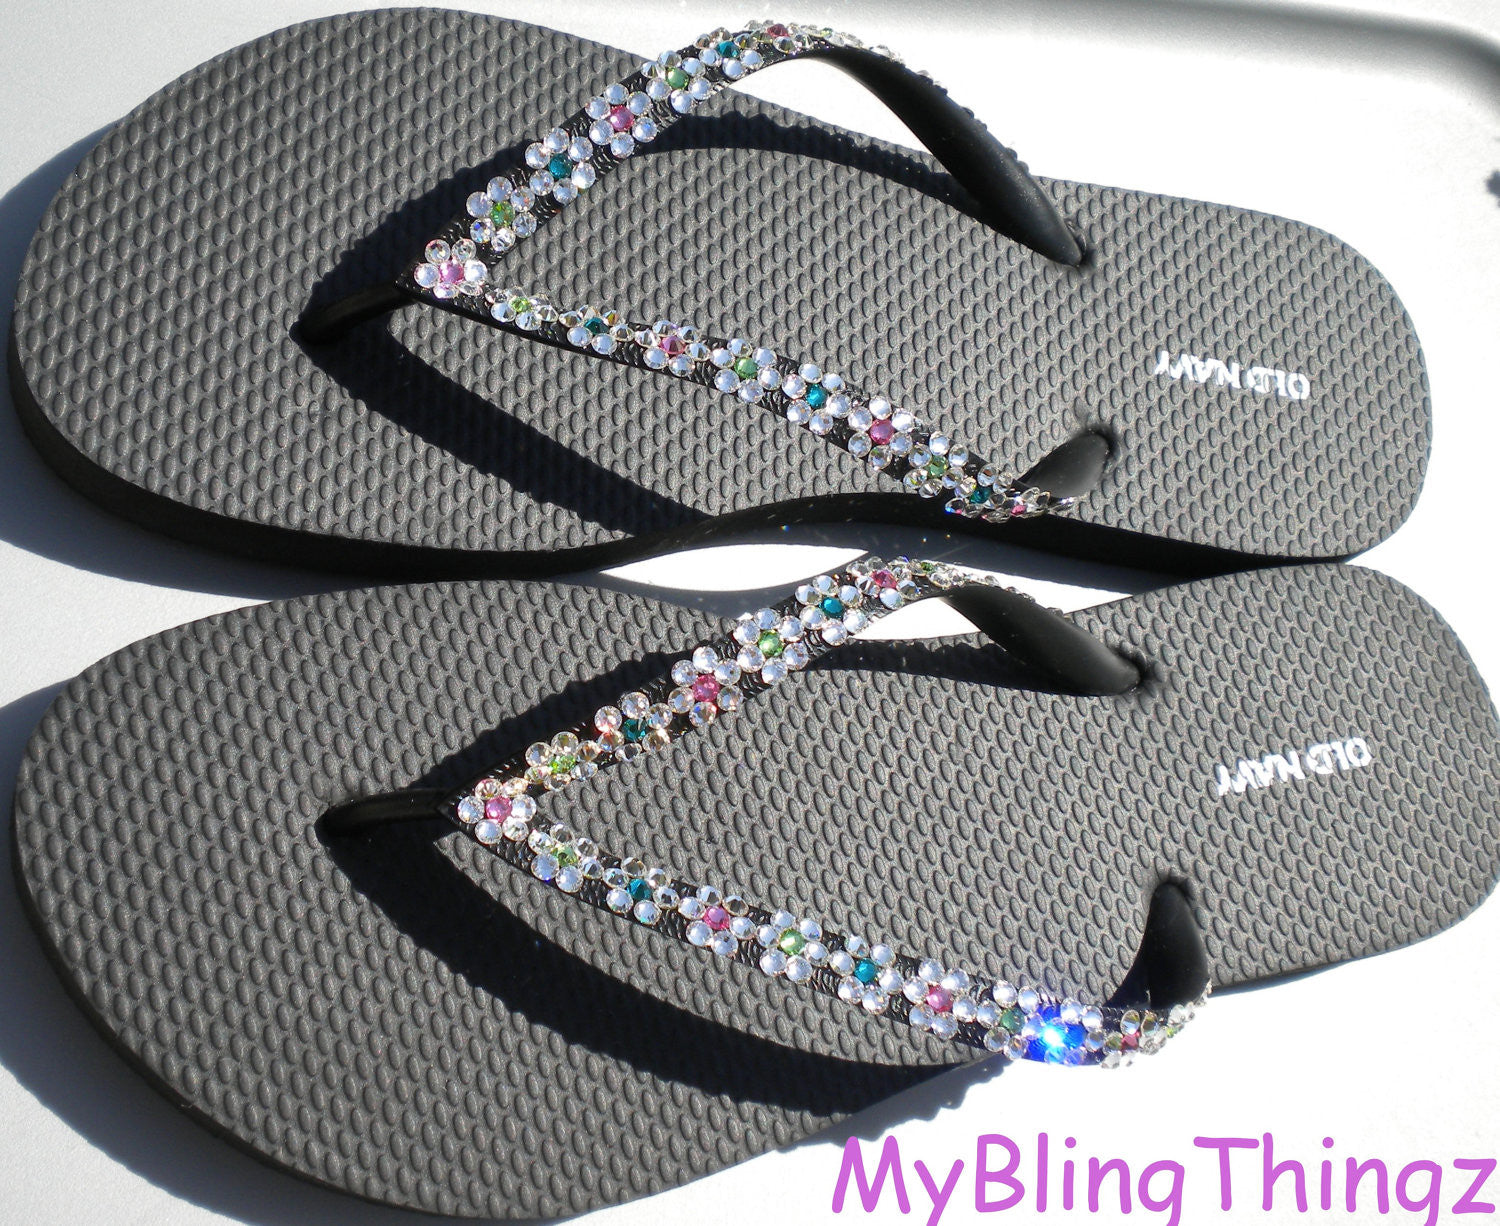 ccd5ddd16 ... Cute Daisy Chain Flowers - Sparkly Bling Flip Flops Sandals Handmade  with real Crystals from Swarovski